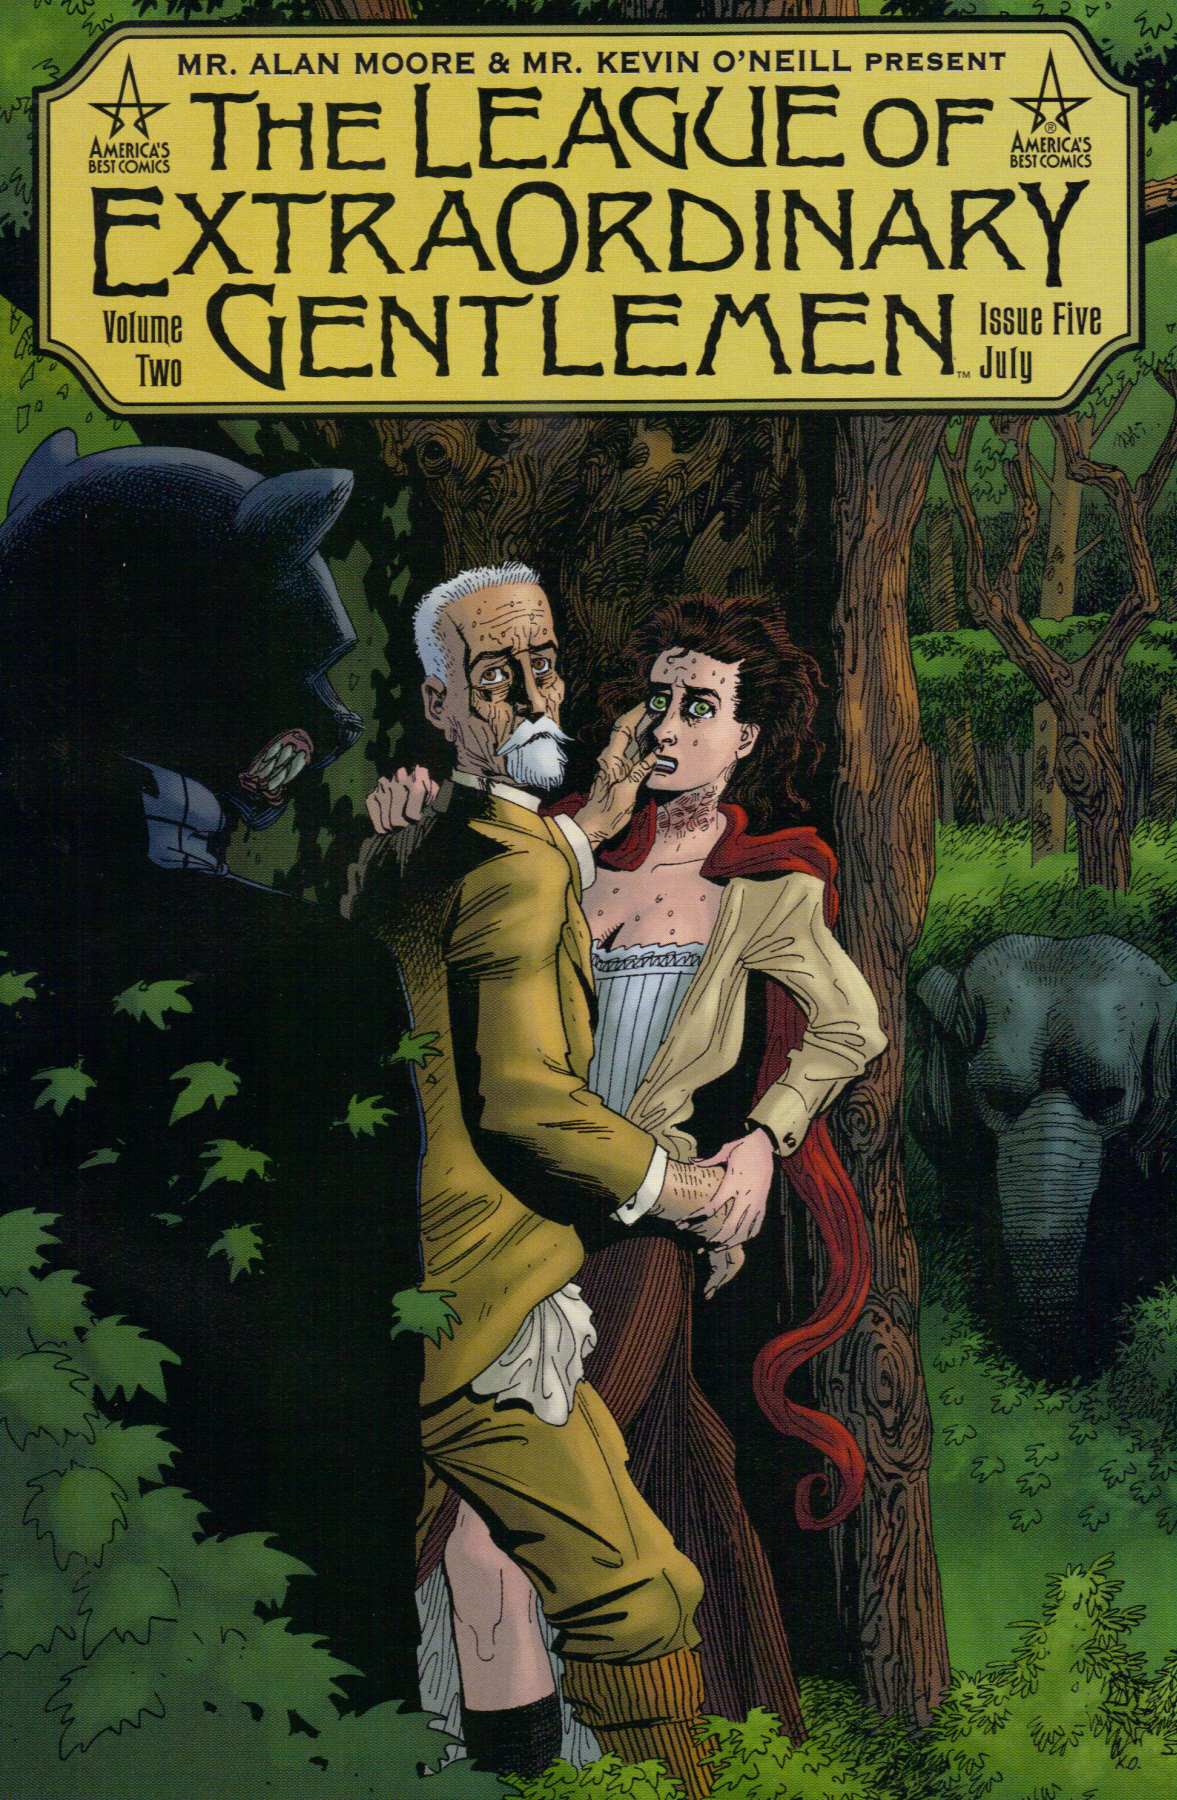 The League of Extraordinary Gentlemen (Vol IV): The Tempest #2 (of 6)